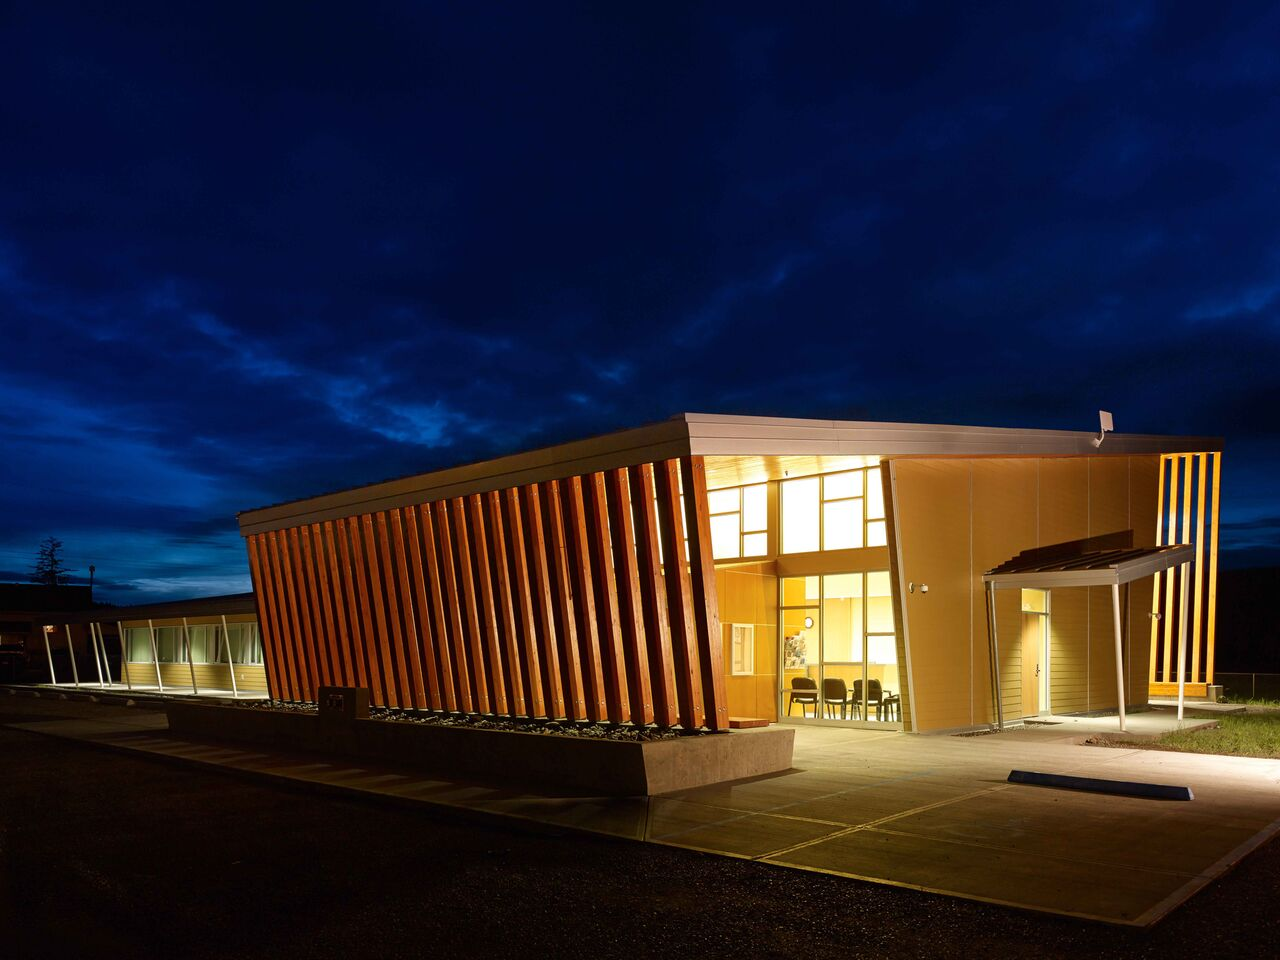 Yunesit'In Health Centre<abbr>Hanceville, B.C. Canada<br>Douglas fir glulam posts, tongue and groove boards</abbr>